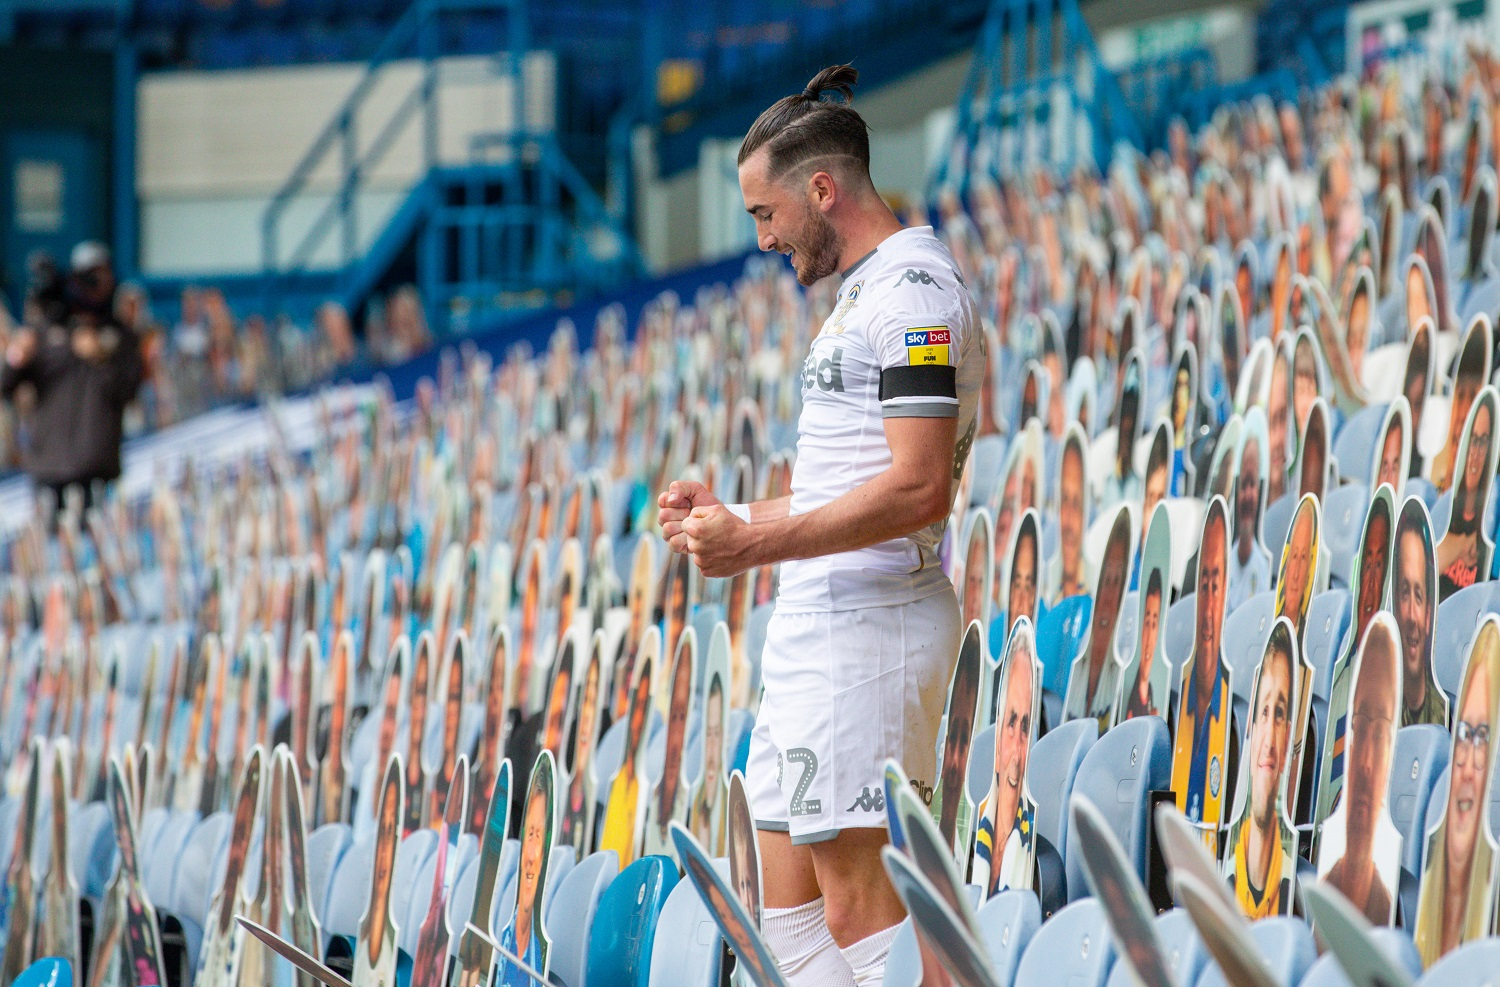 Leeds United's Jack Harrison celebrates scoring the team's third goal during the match vs. Fulham. | Alex Dodd - CameraSport via Getty Images